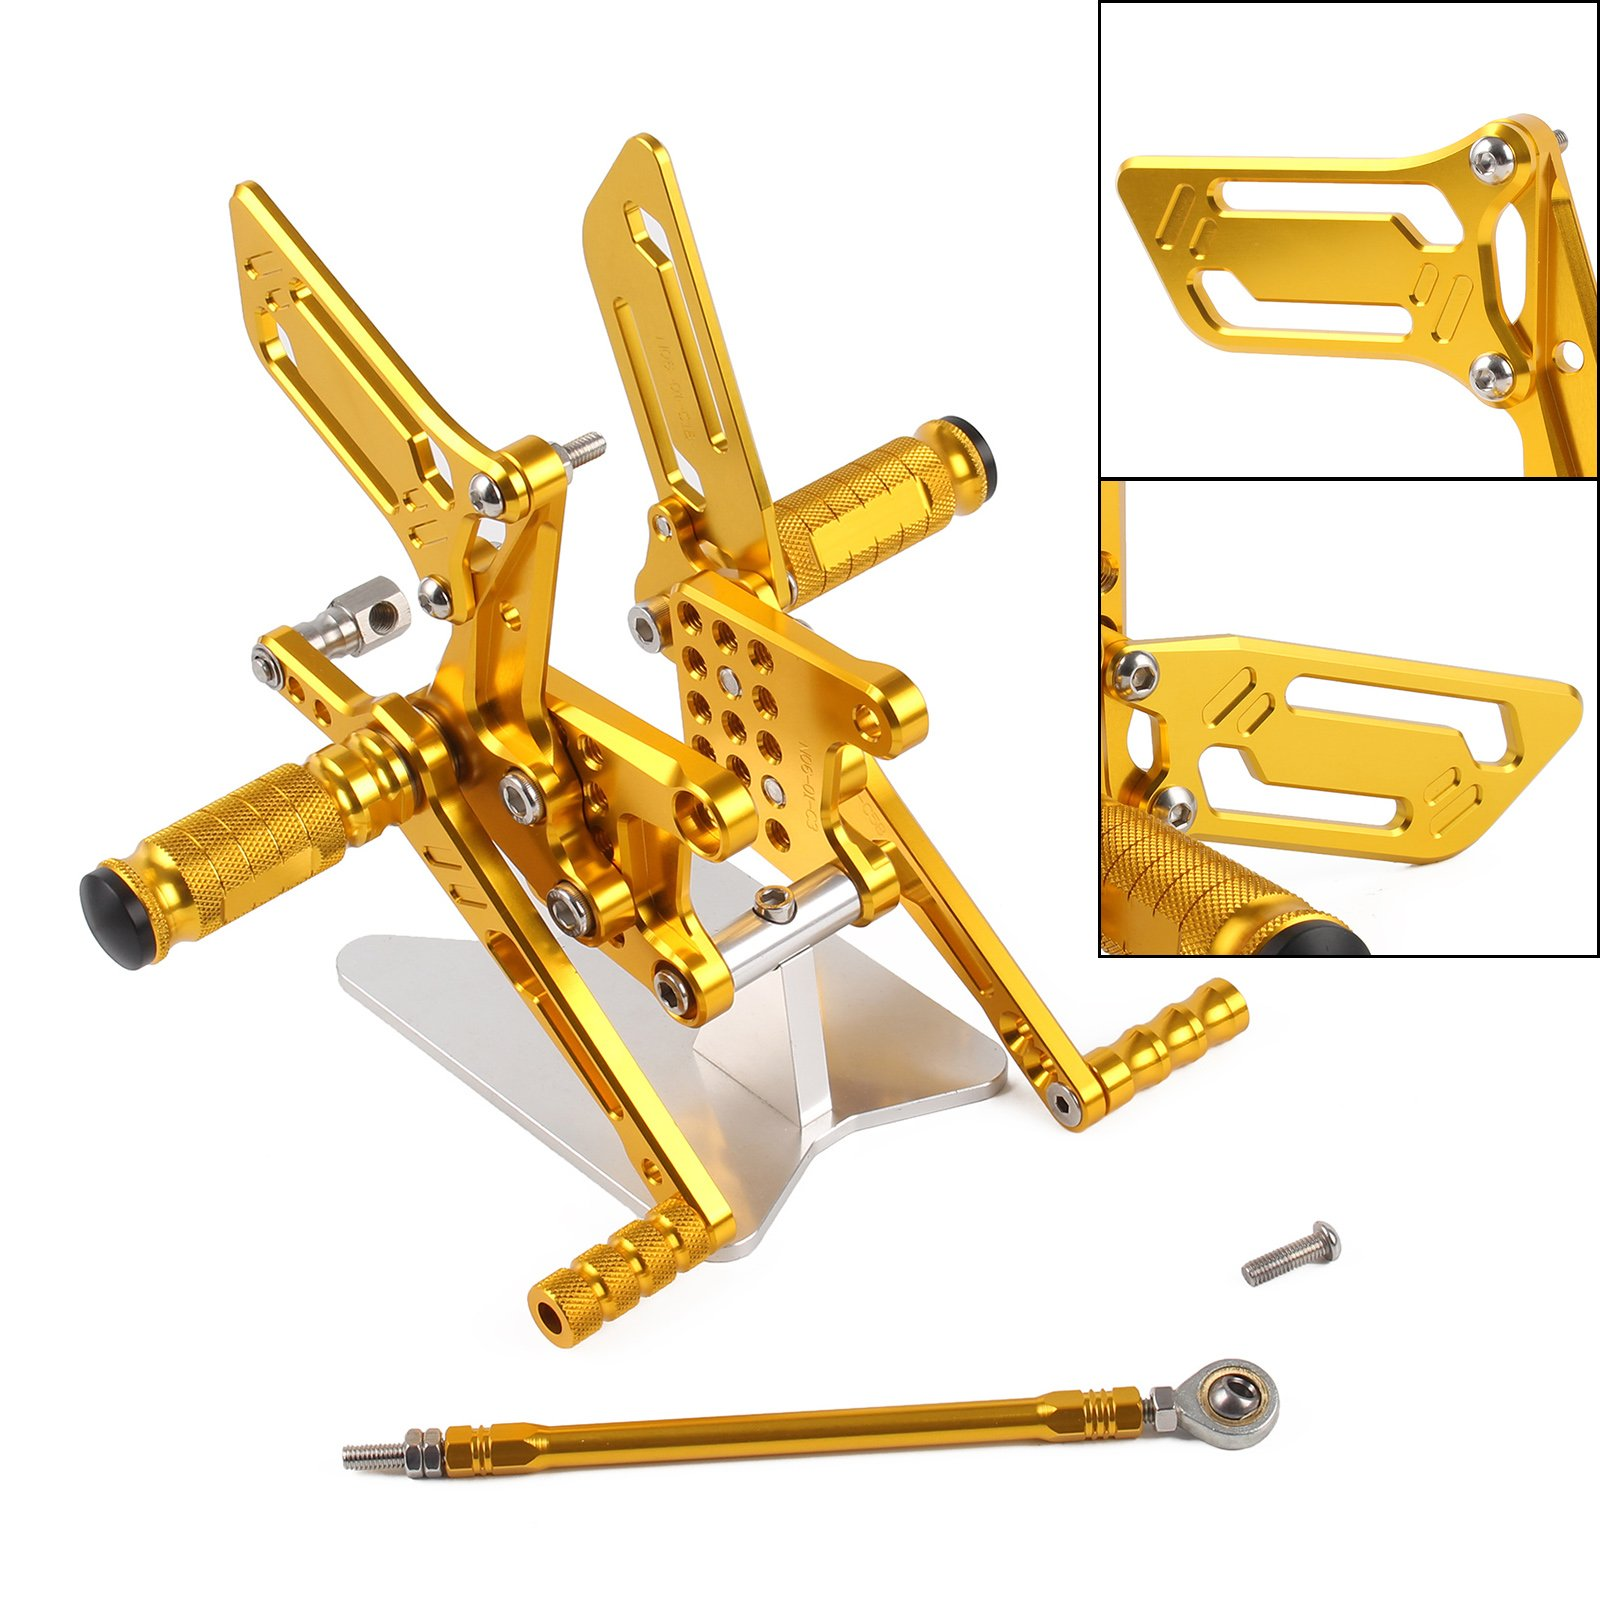 NEVERLAND Adjustable Rearset Rear Set Foot Pegs Adjustable for Suzuki GSXR600/750/1000 00-04 SV650/S 03-08 Gold